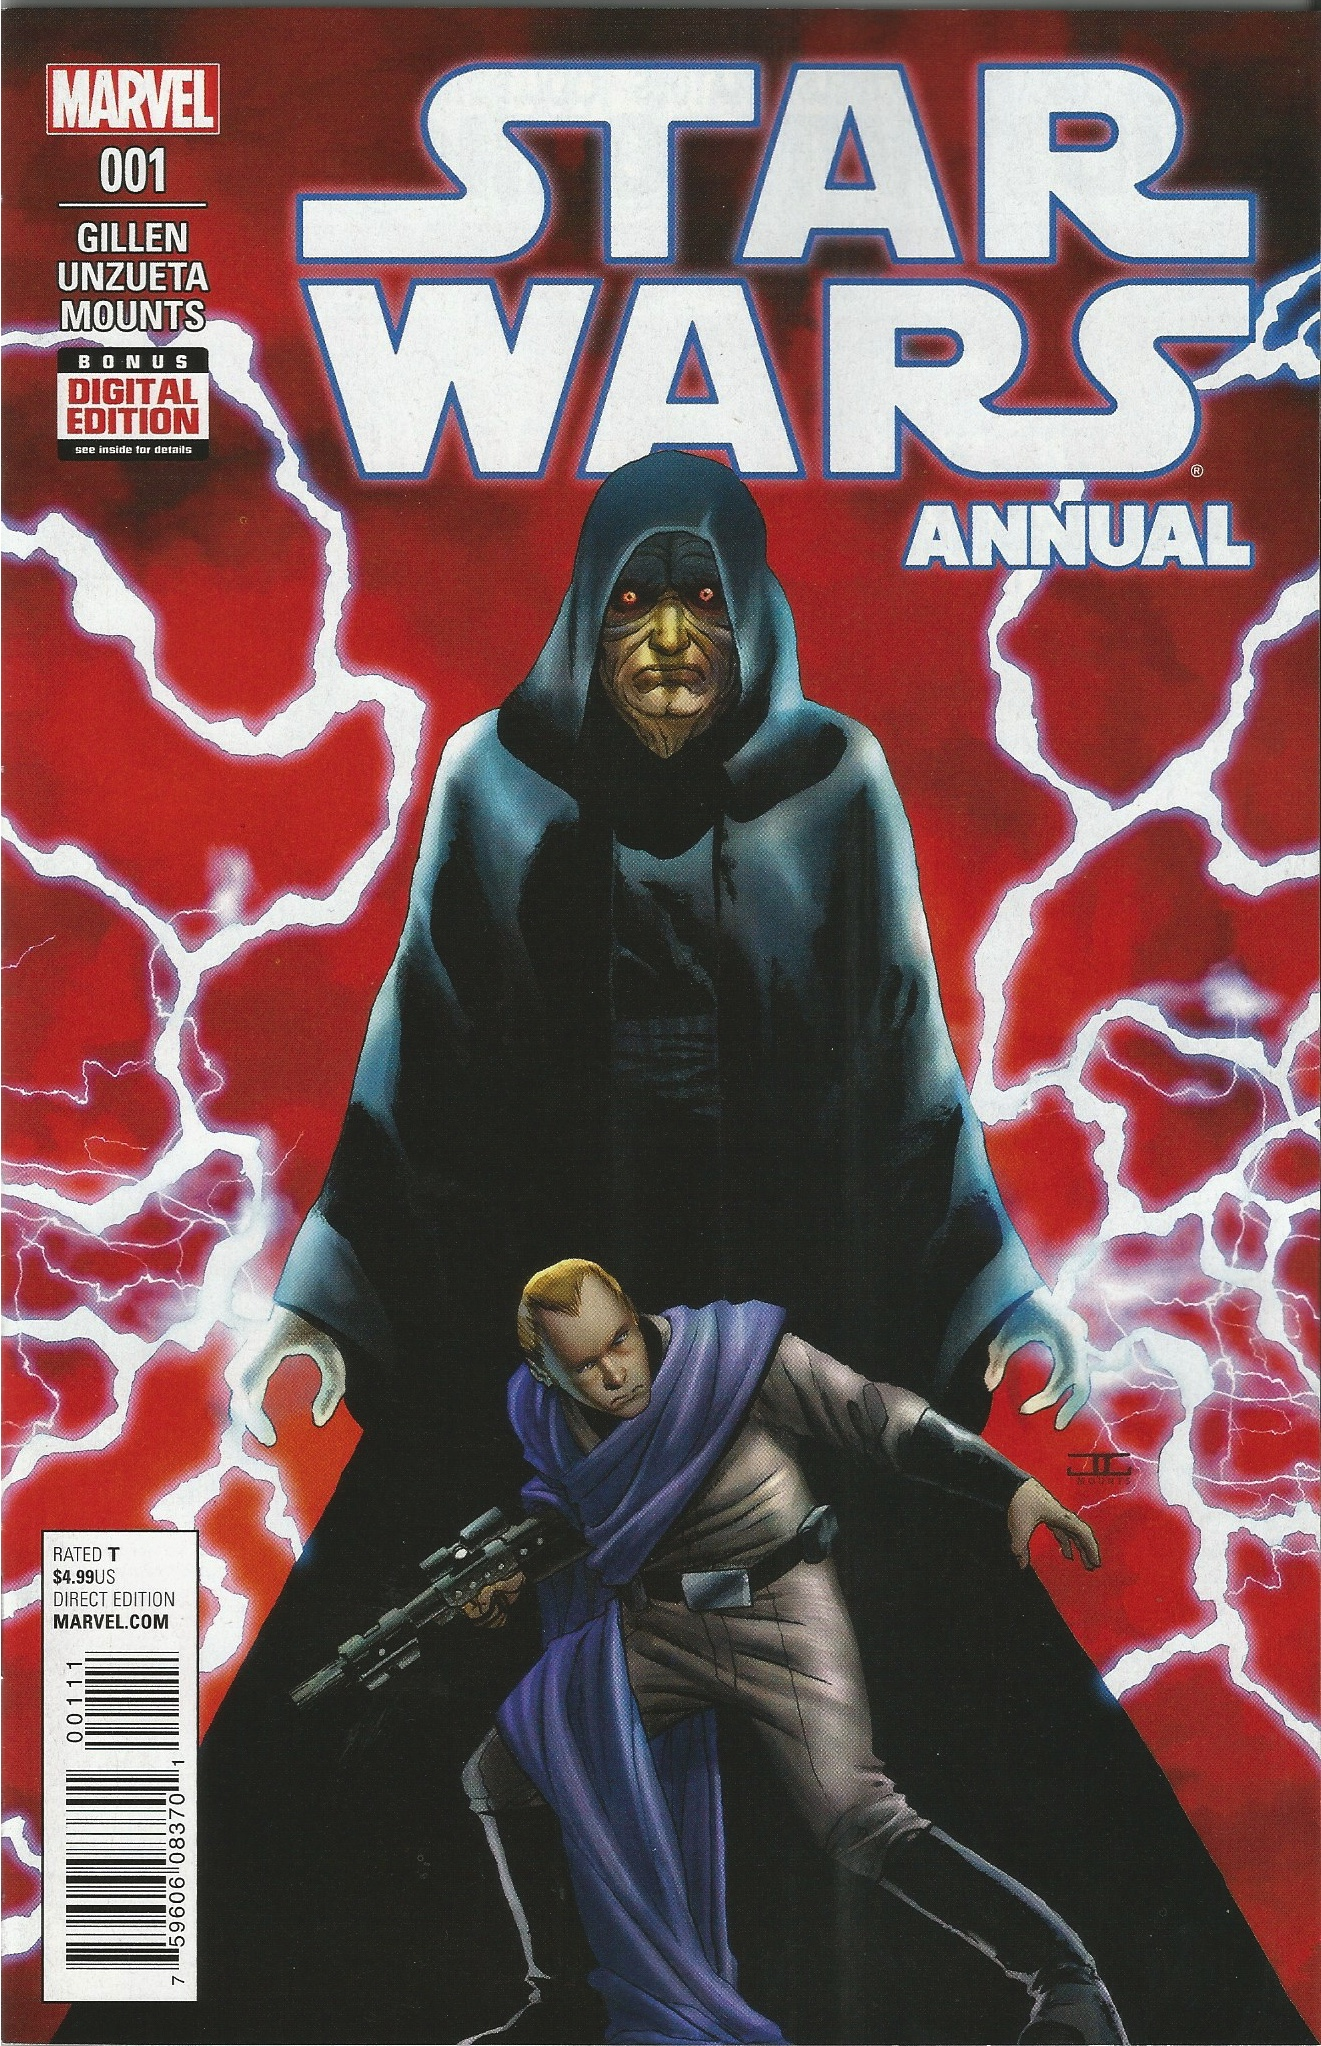 COMIC REVIEW: Star Wars Annual #1 - I Was Naive